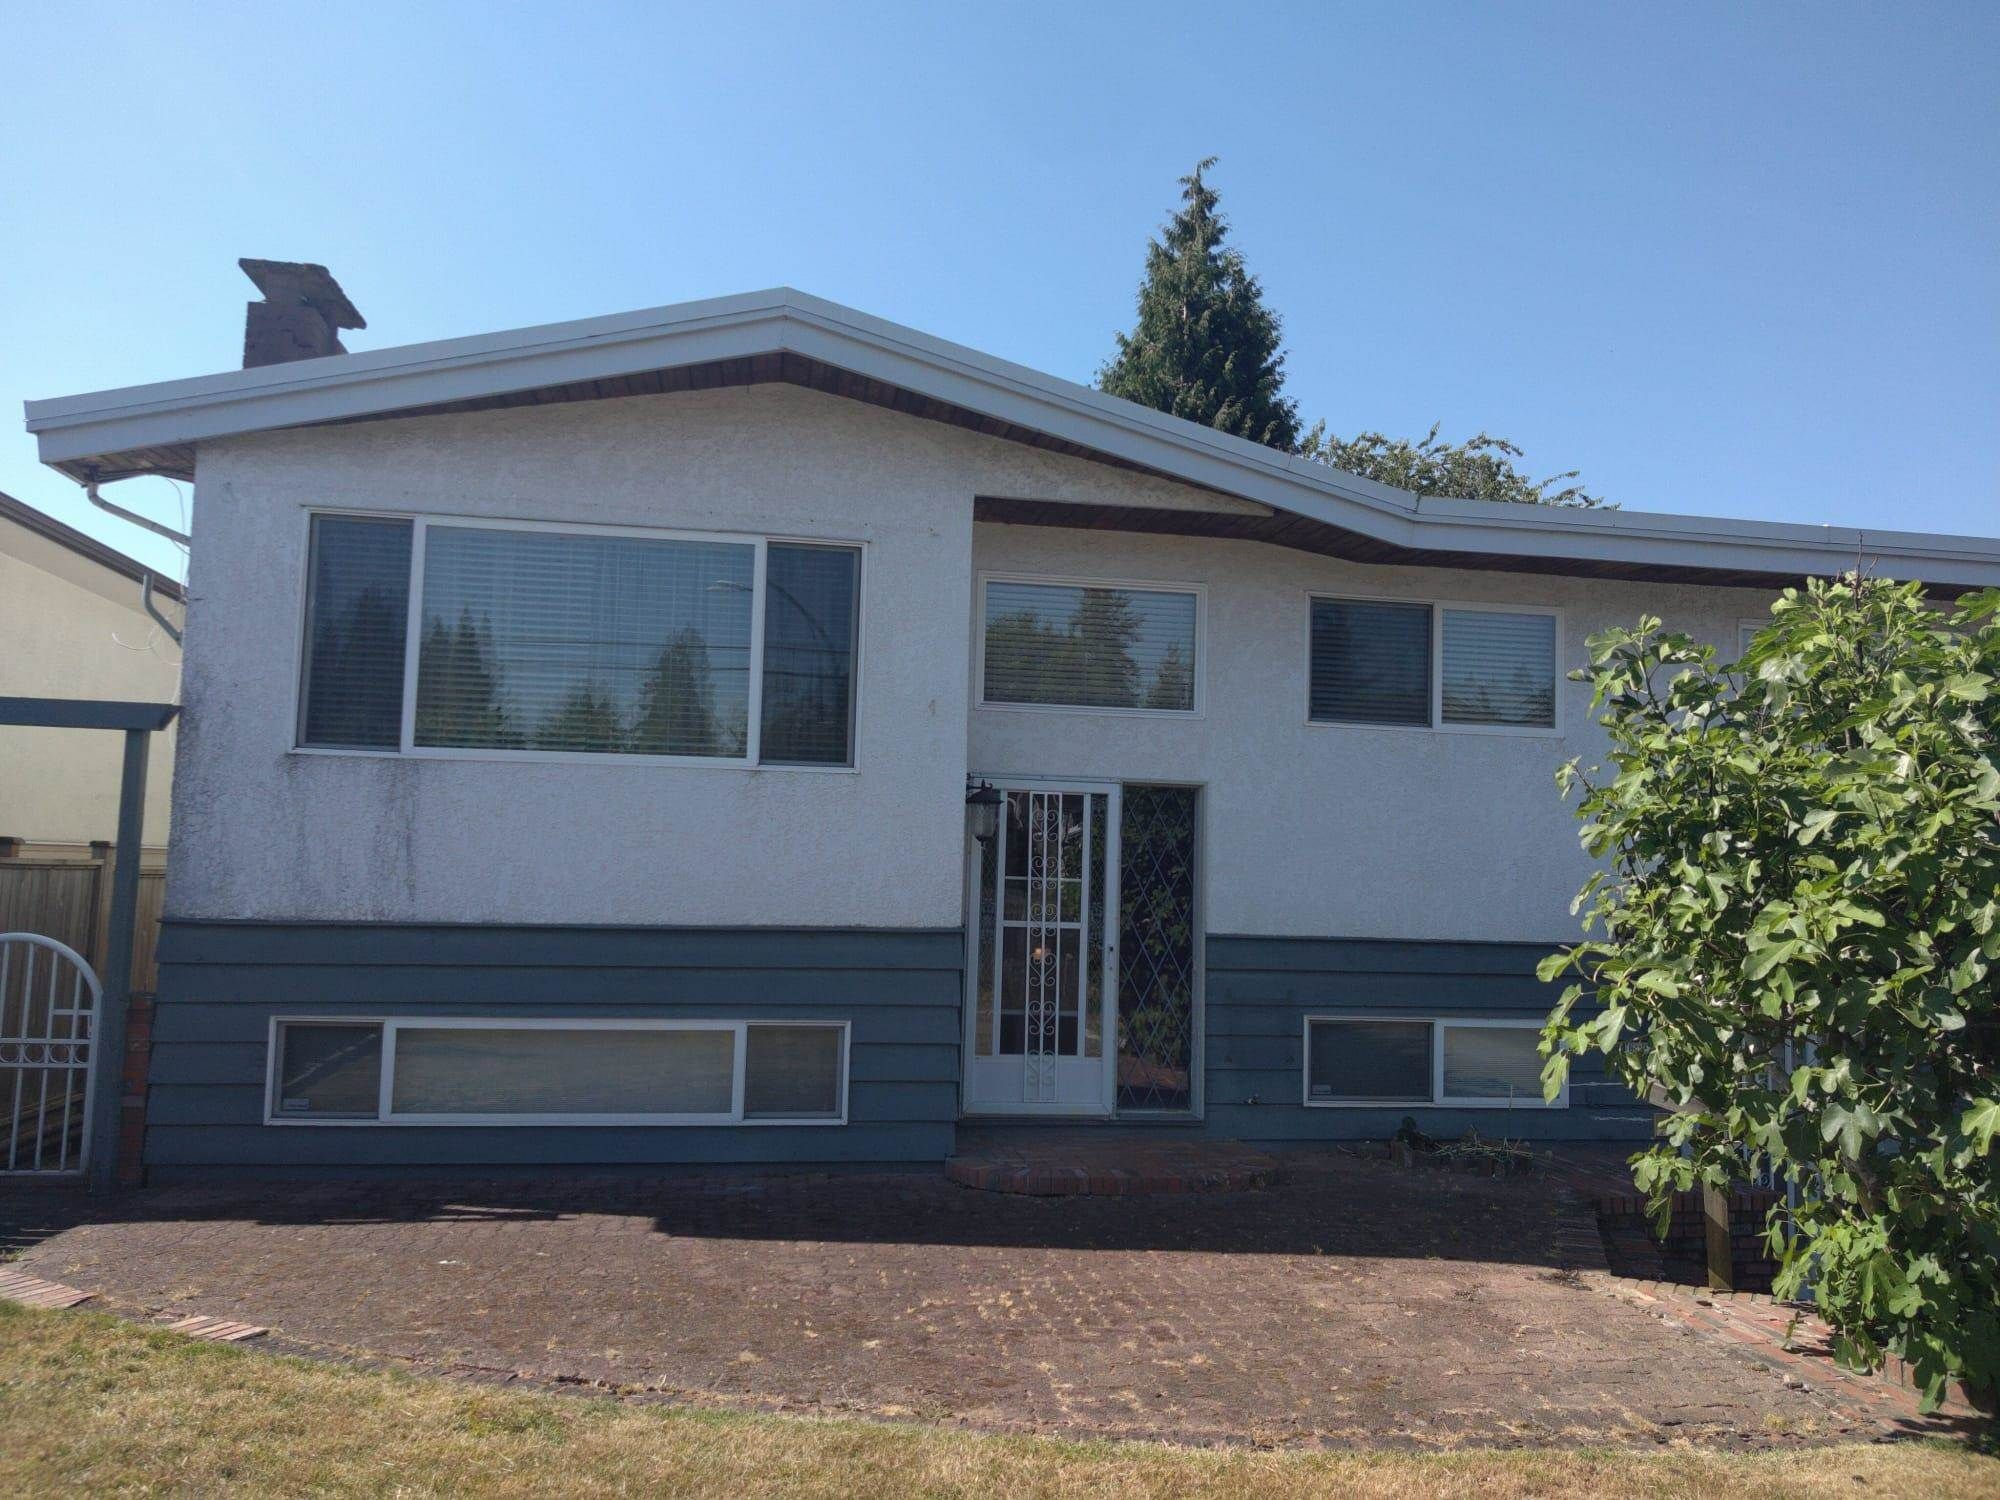 Main Photo: 7755 ELWELL Street in Burnaby: Burnaby Lake House for sale (Burnaby South)  : MLS®# R2597809